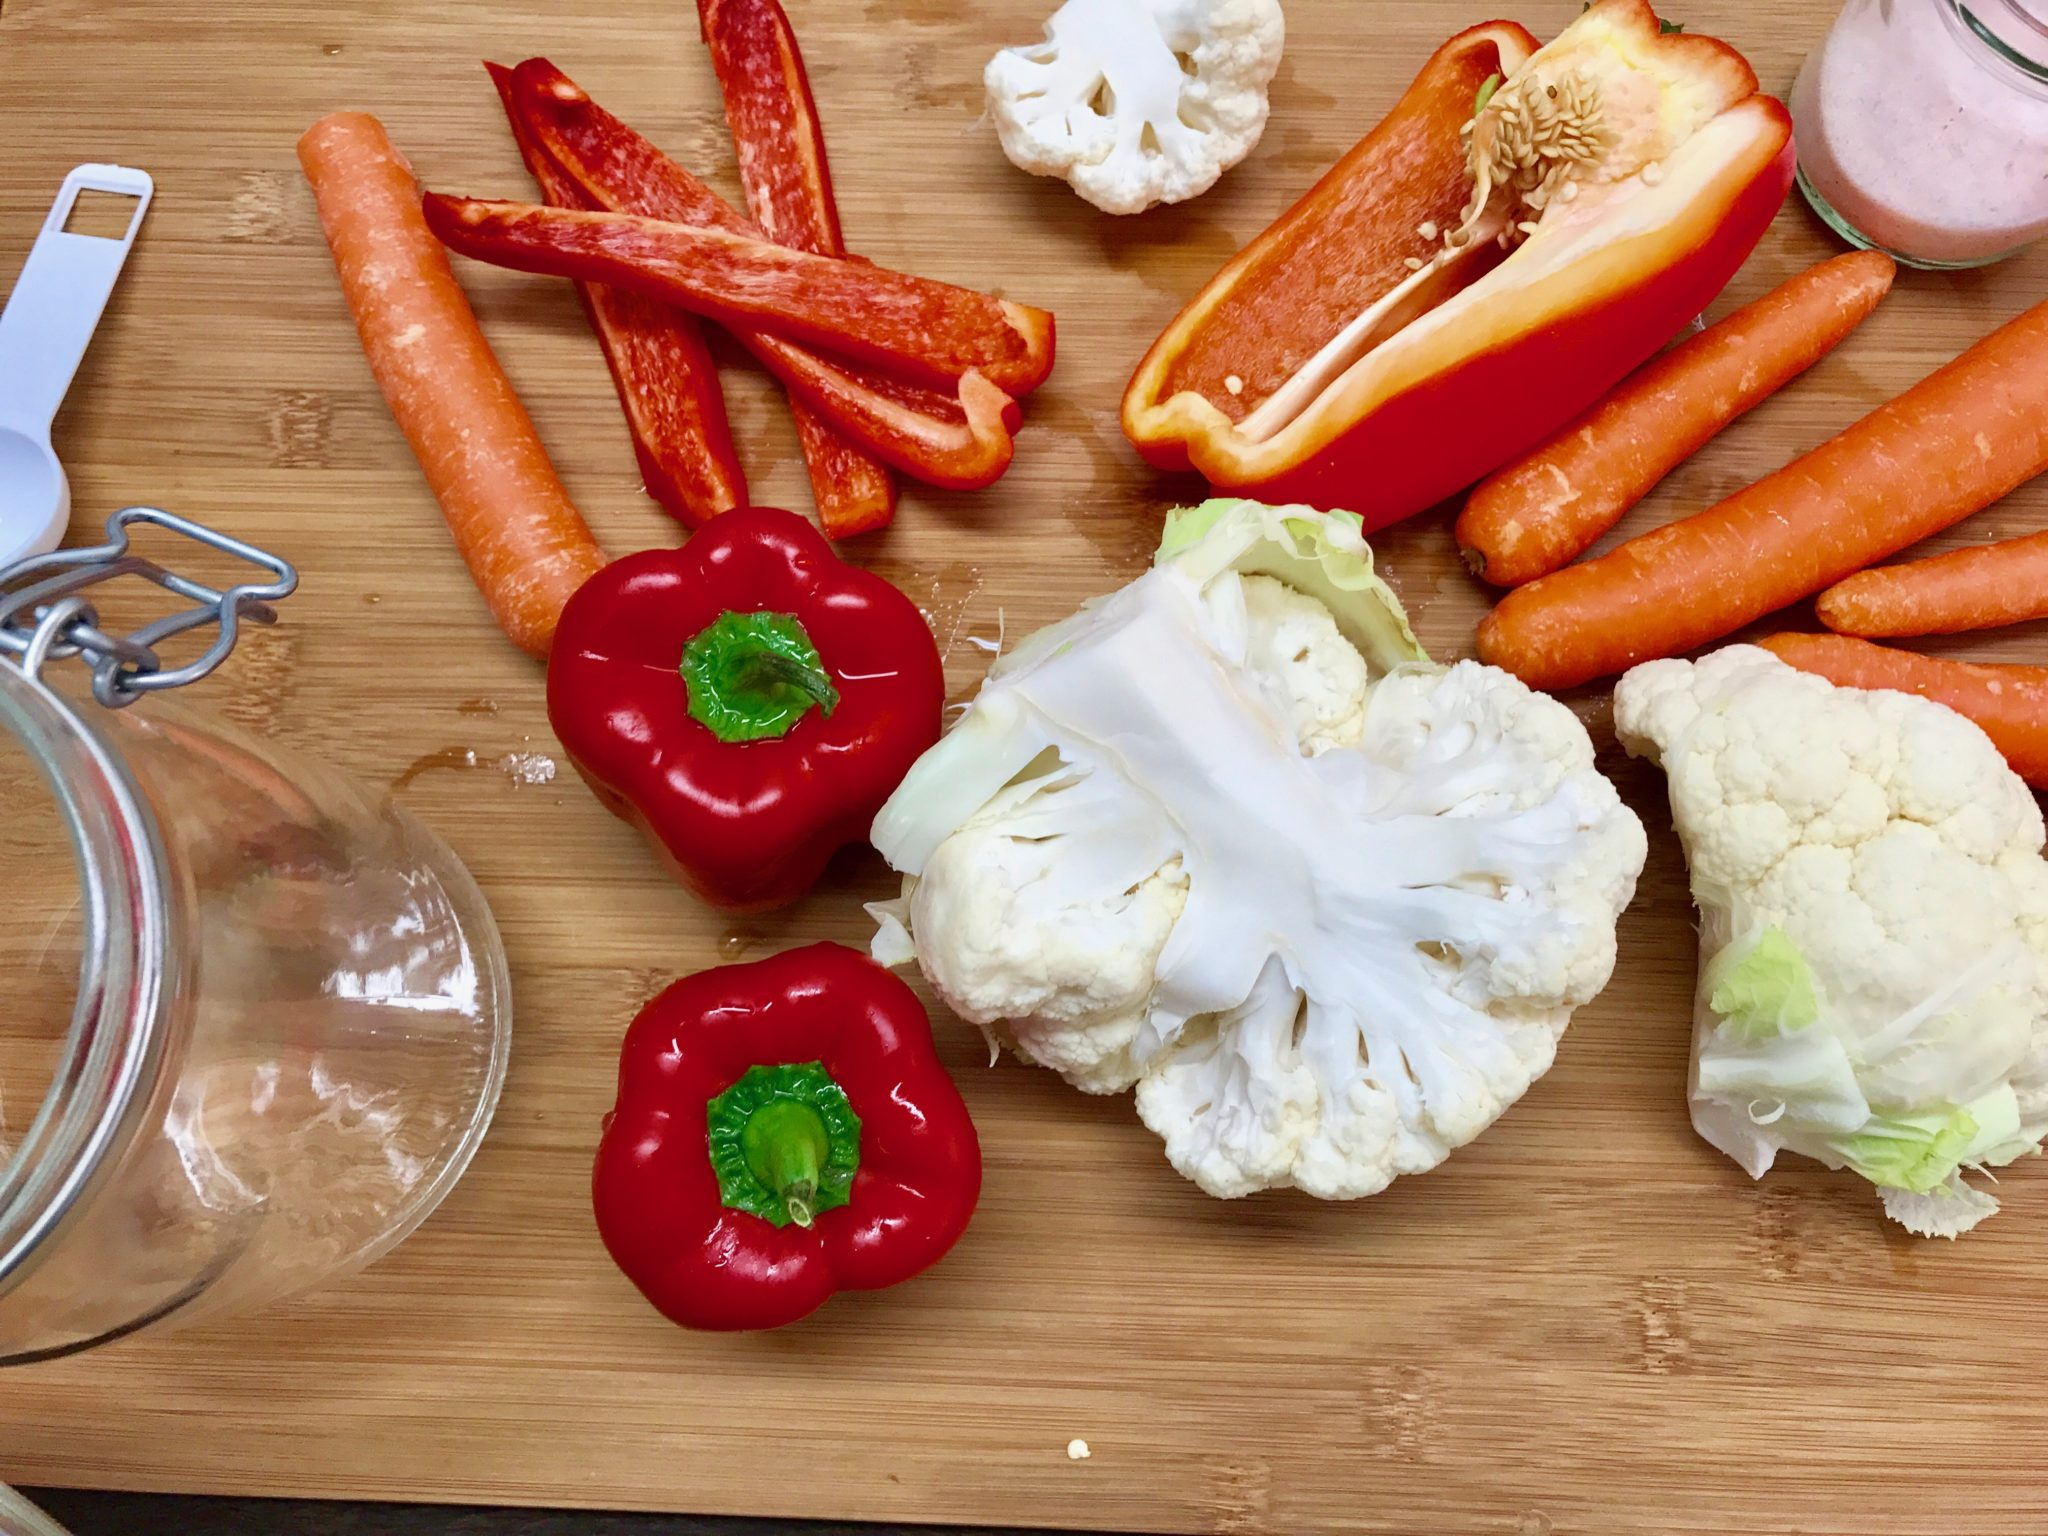 wash and prepare the vegetables